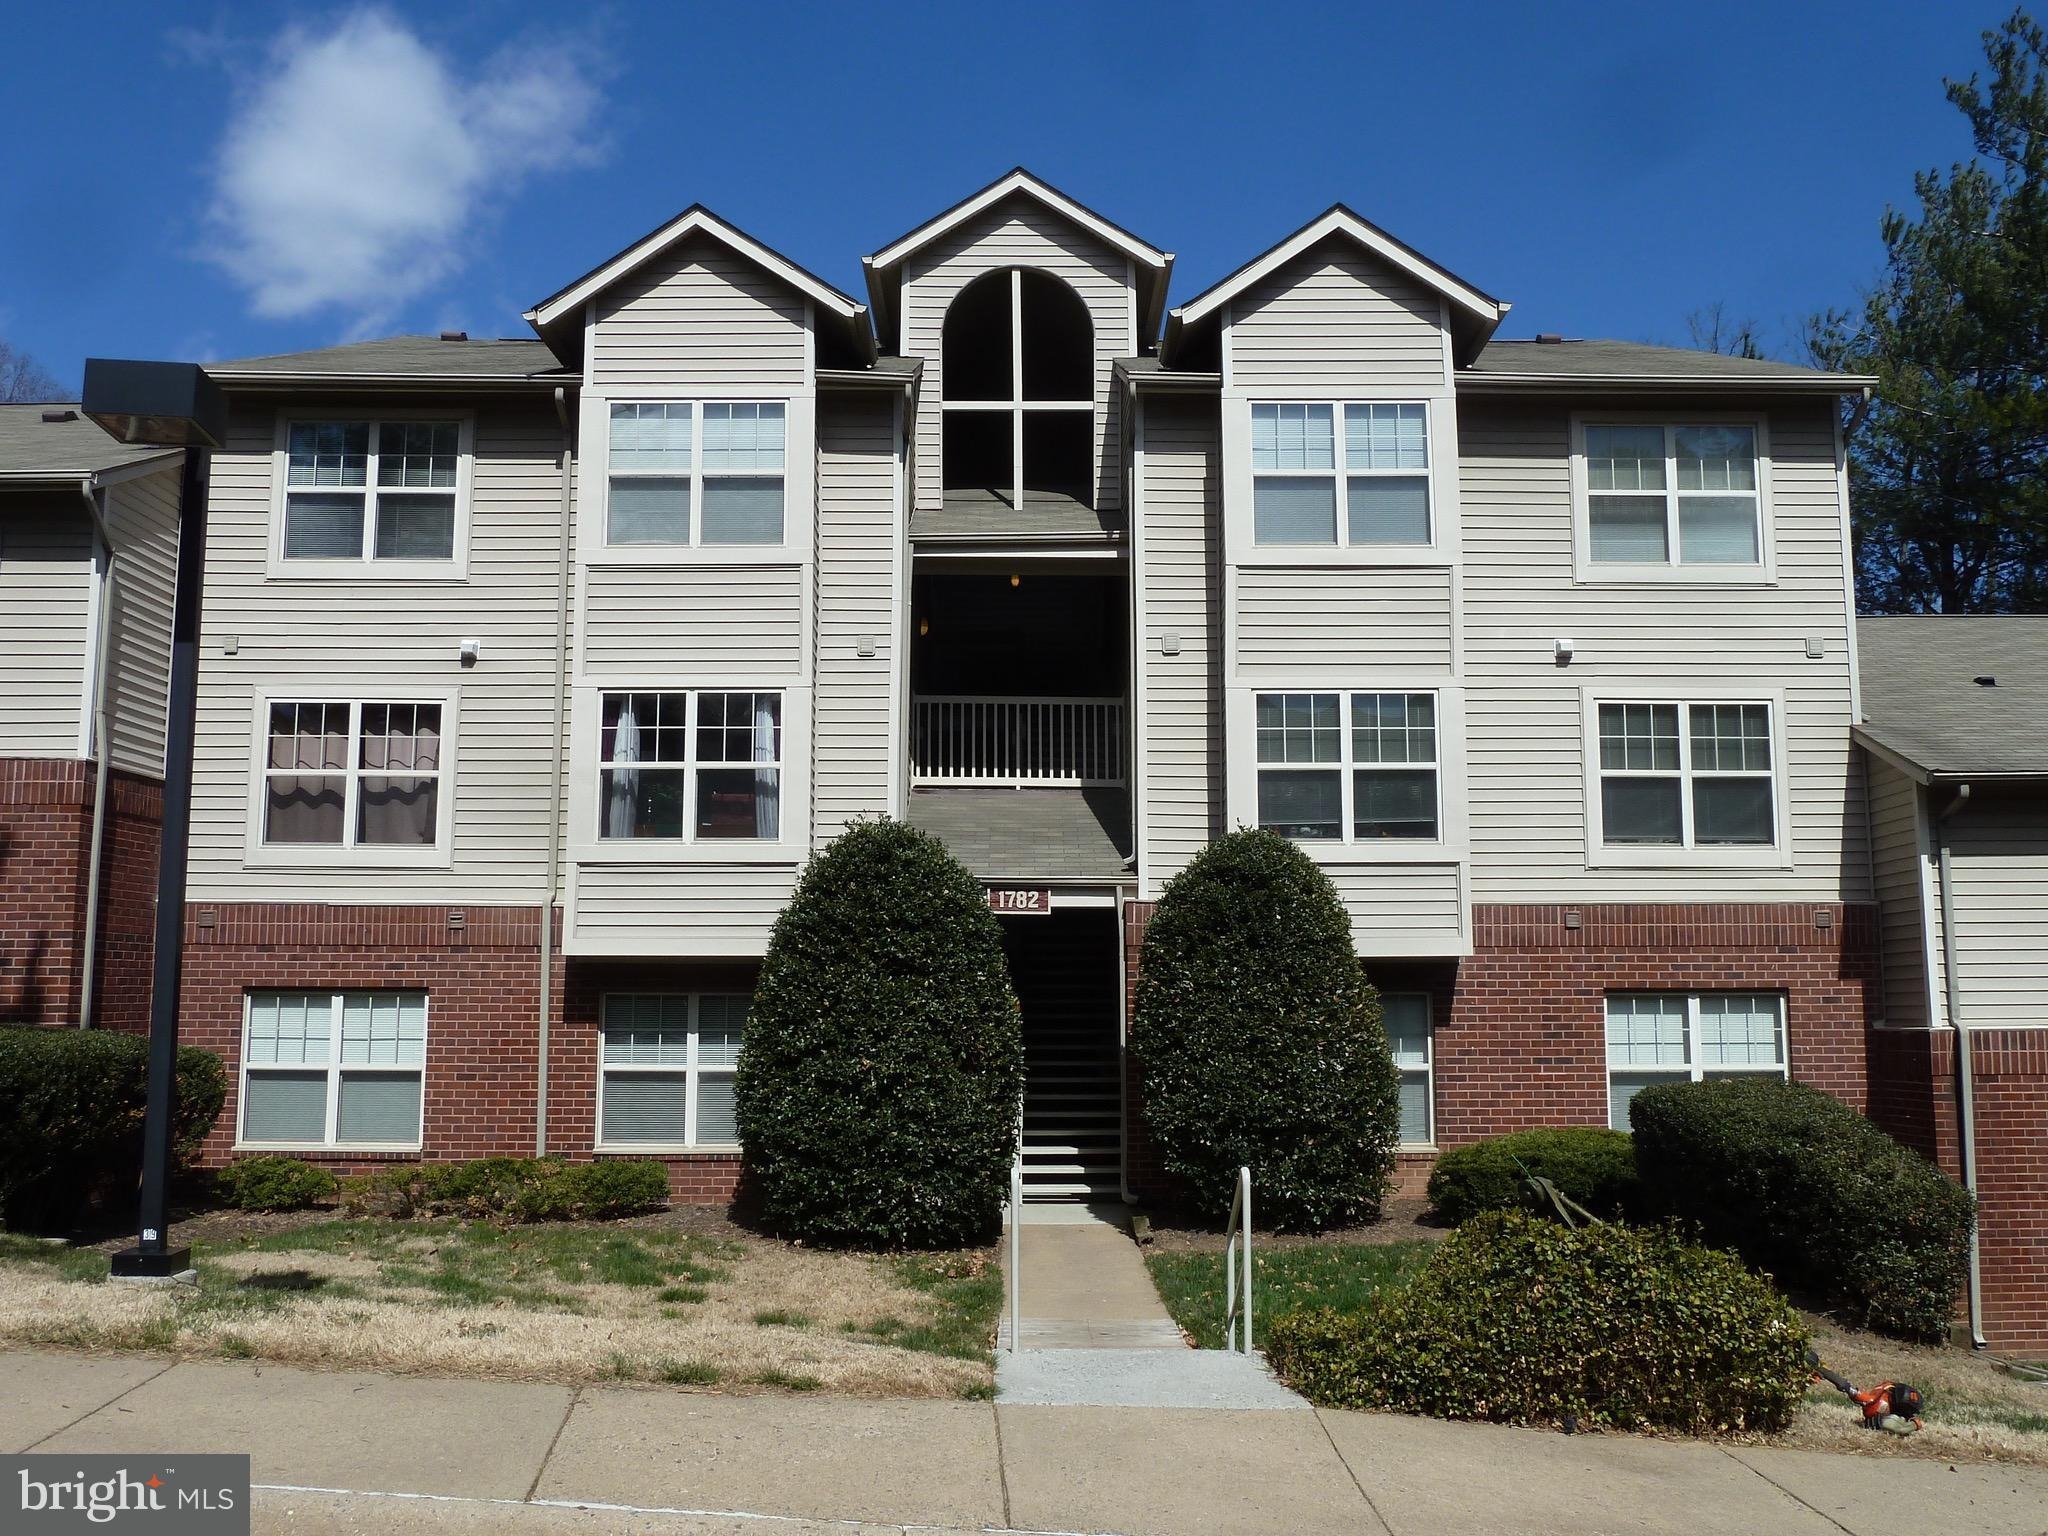 1782 JONATHAN WAY, #F, Reston, VA 20190